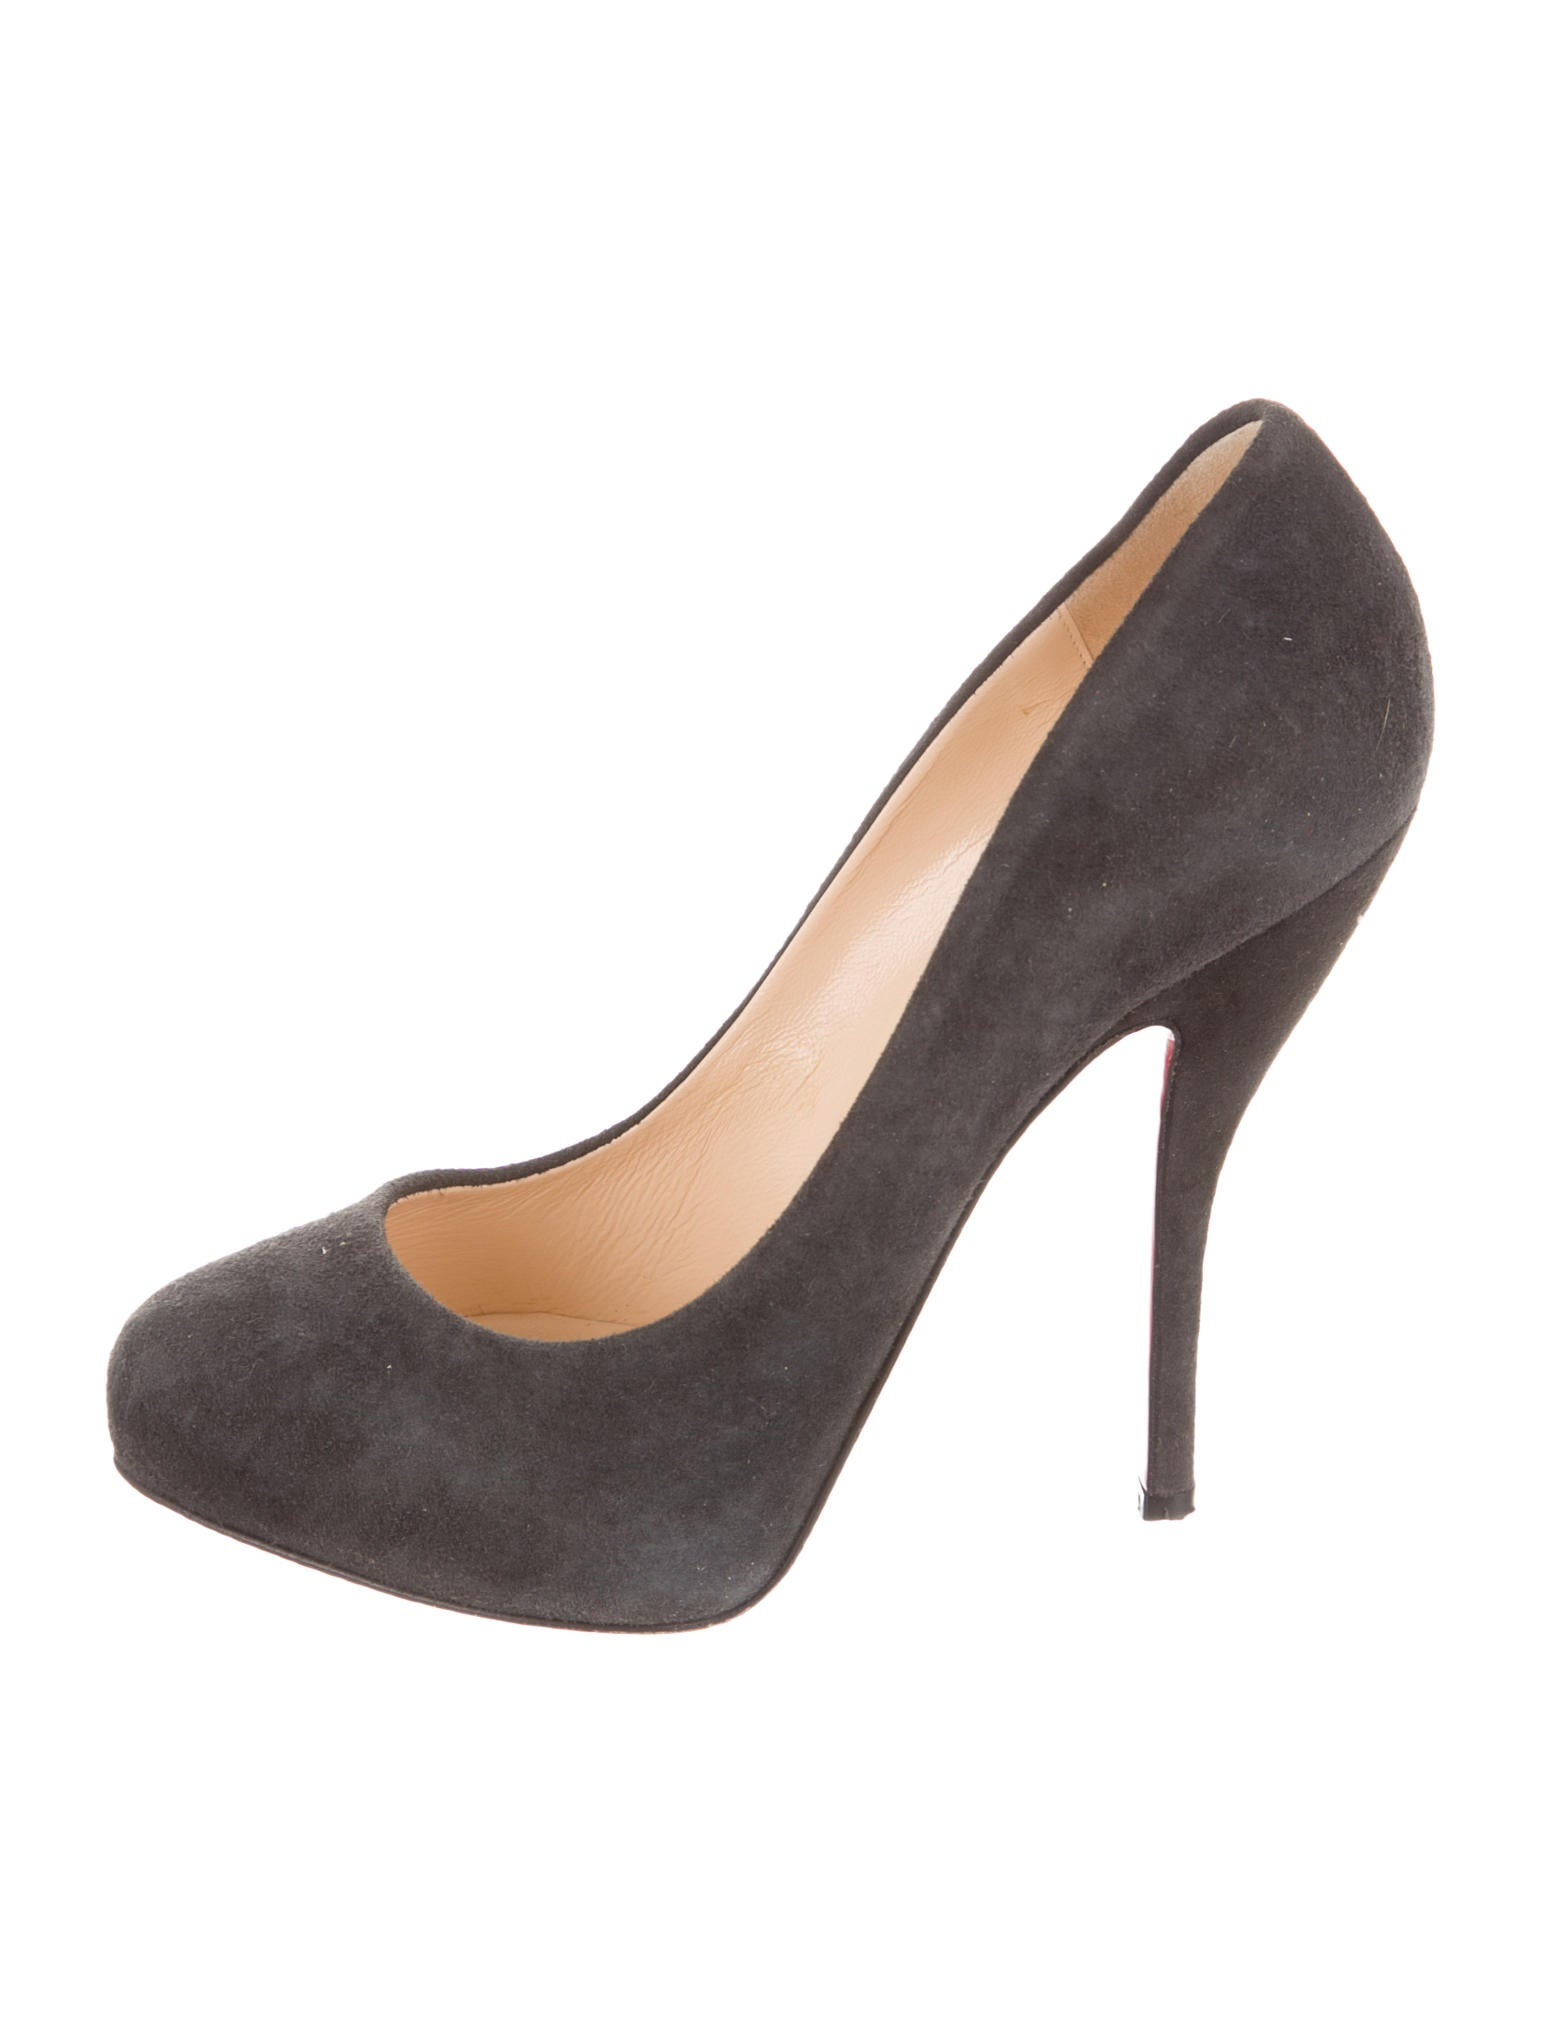 new arrival 7f886 5d1bc Artesur » christian louboutin round-toe pumps Grey suede ...